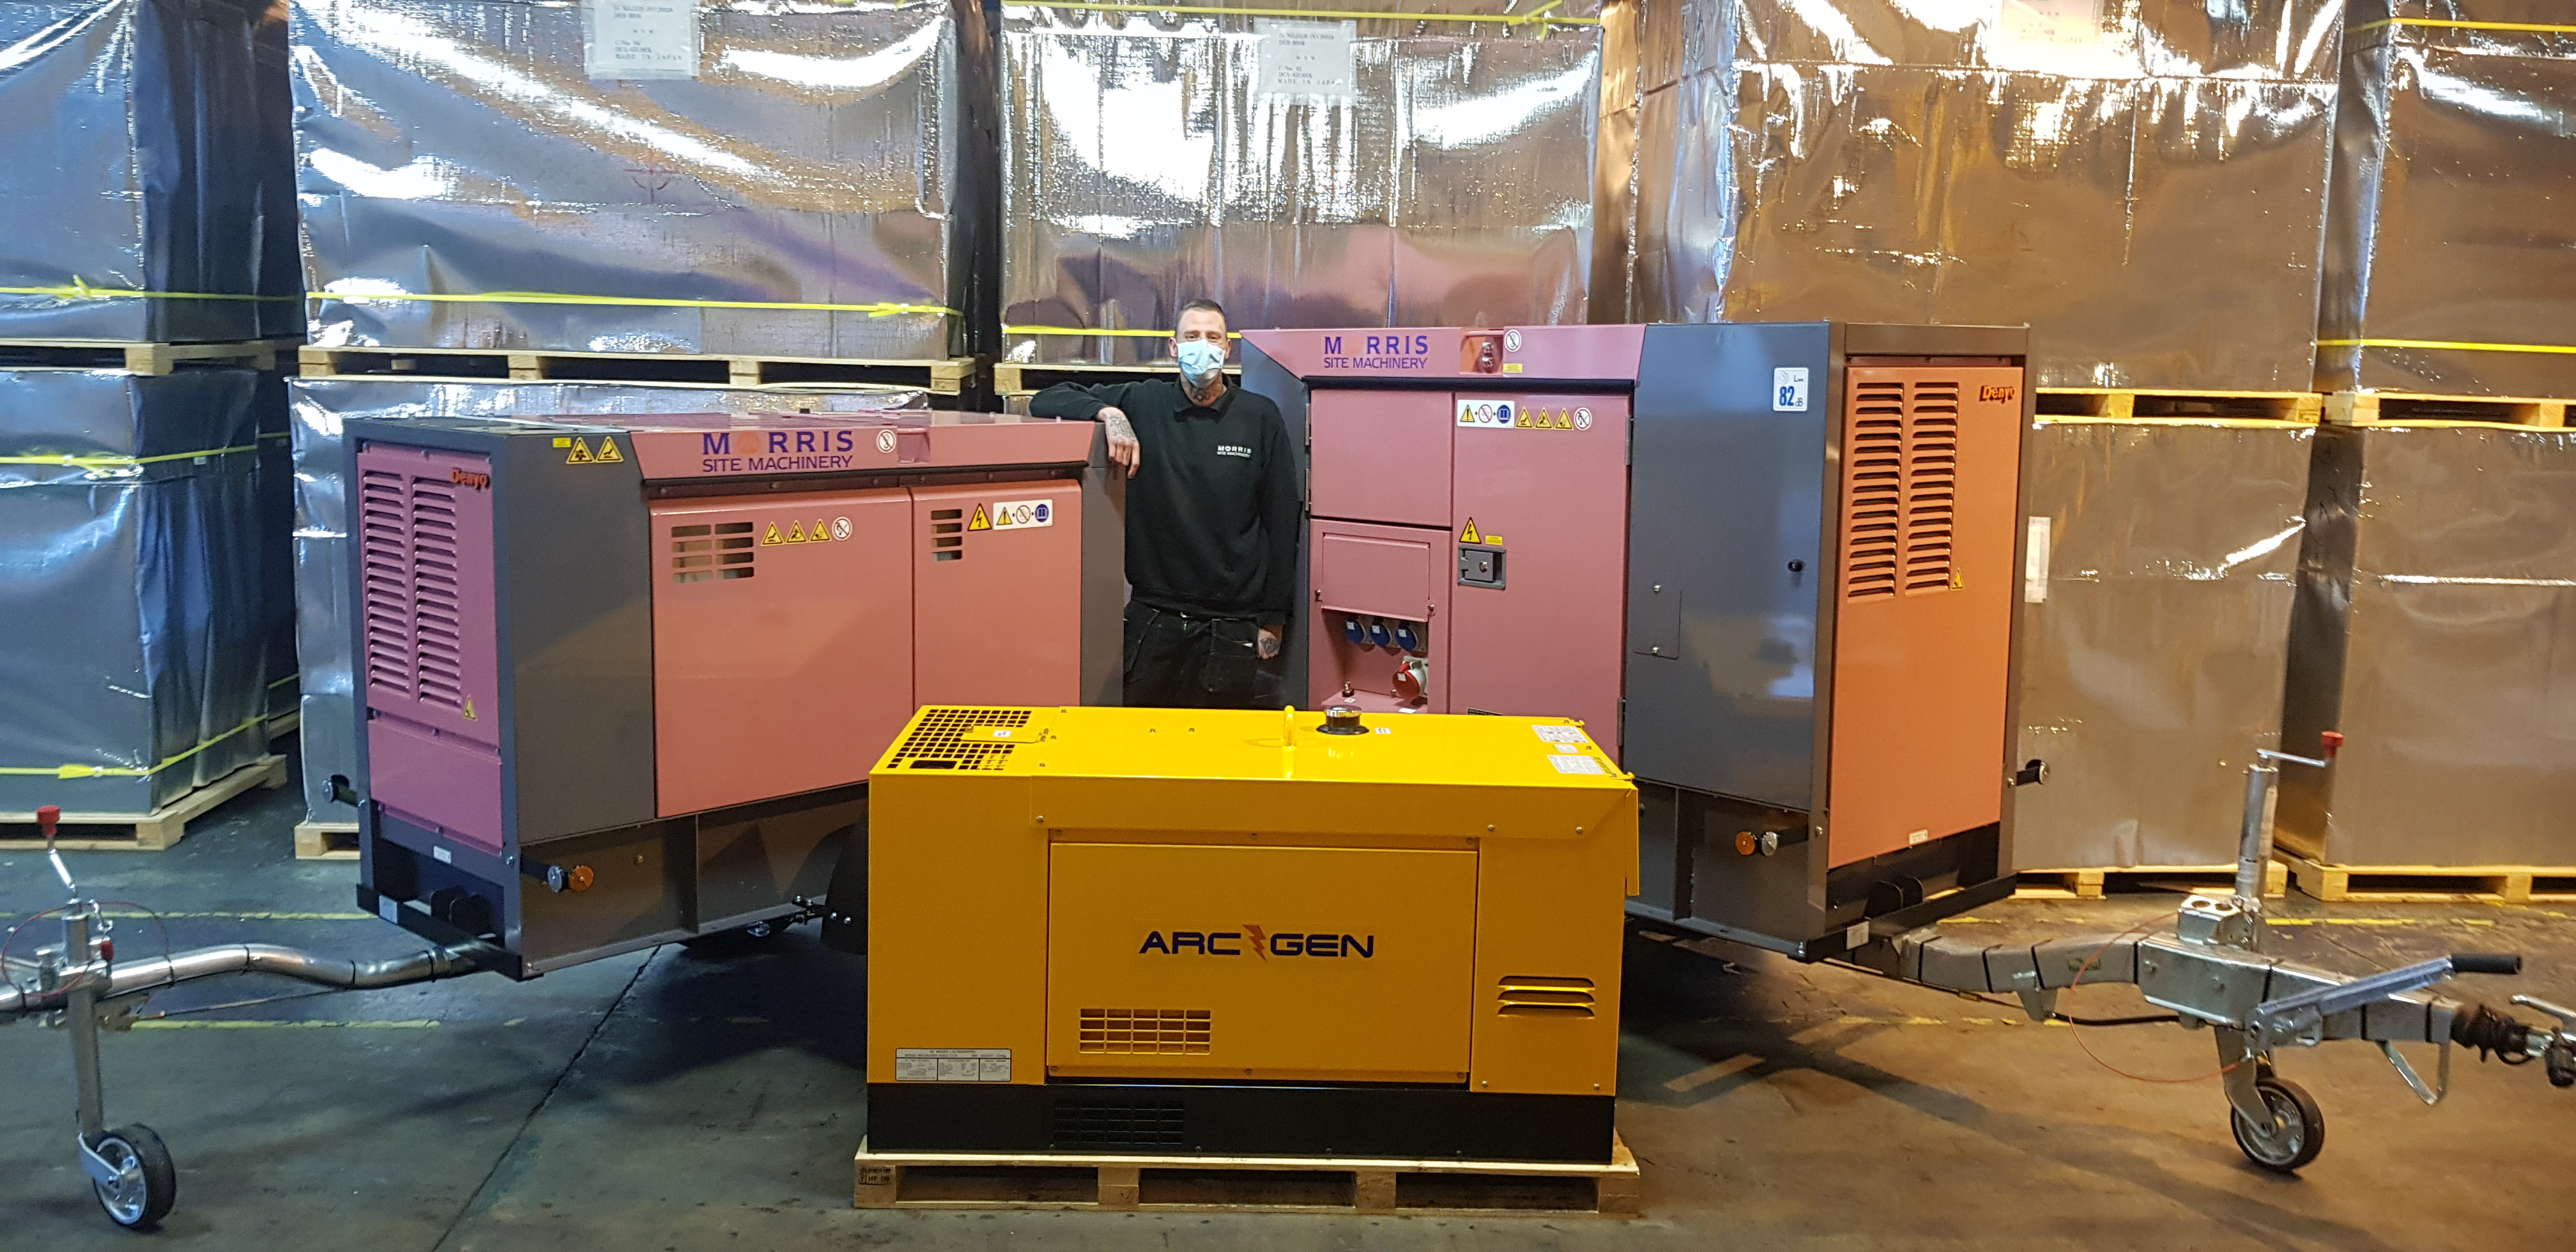 £4 million stock Investment for Site Machinery Business